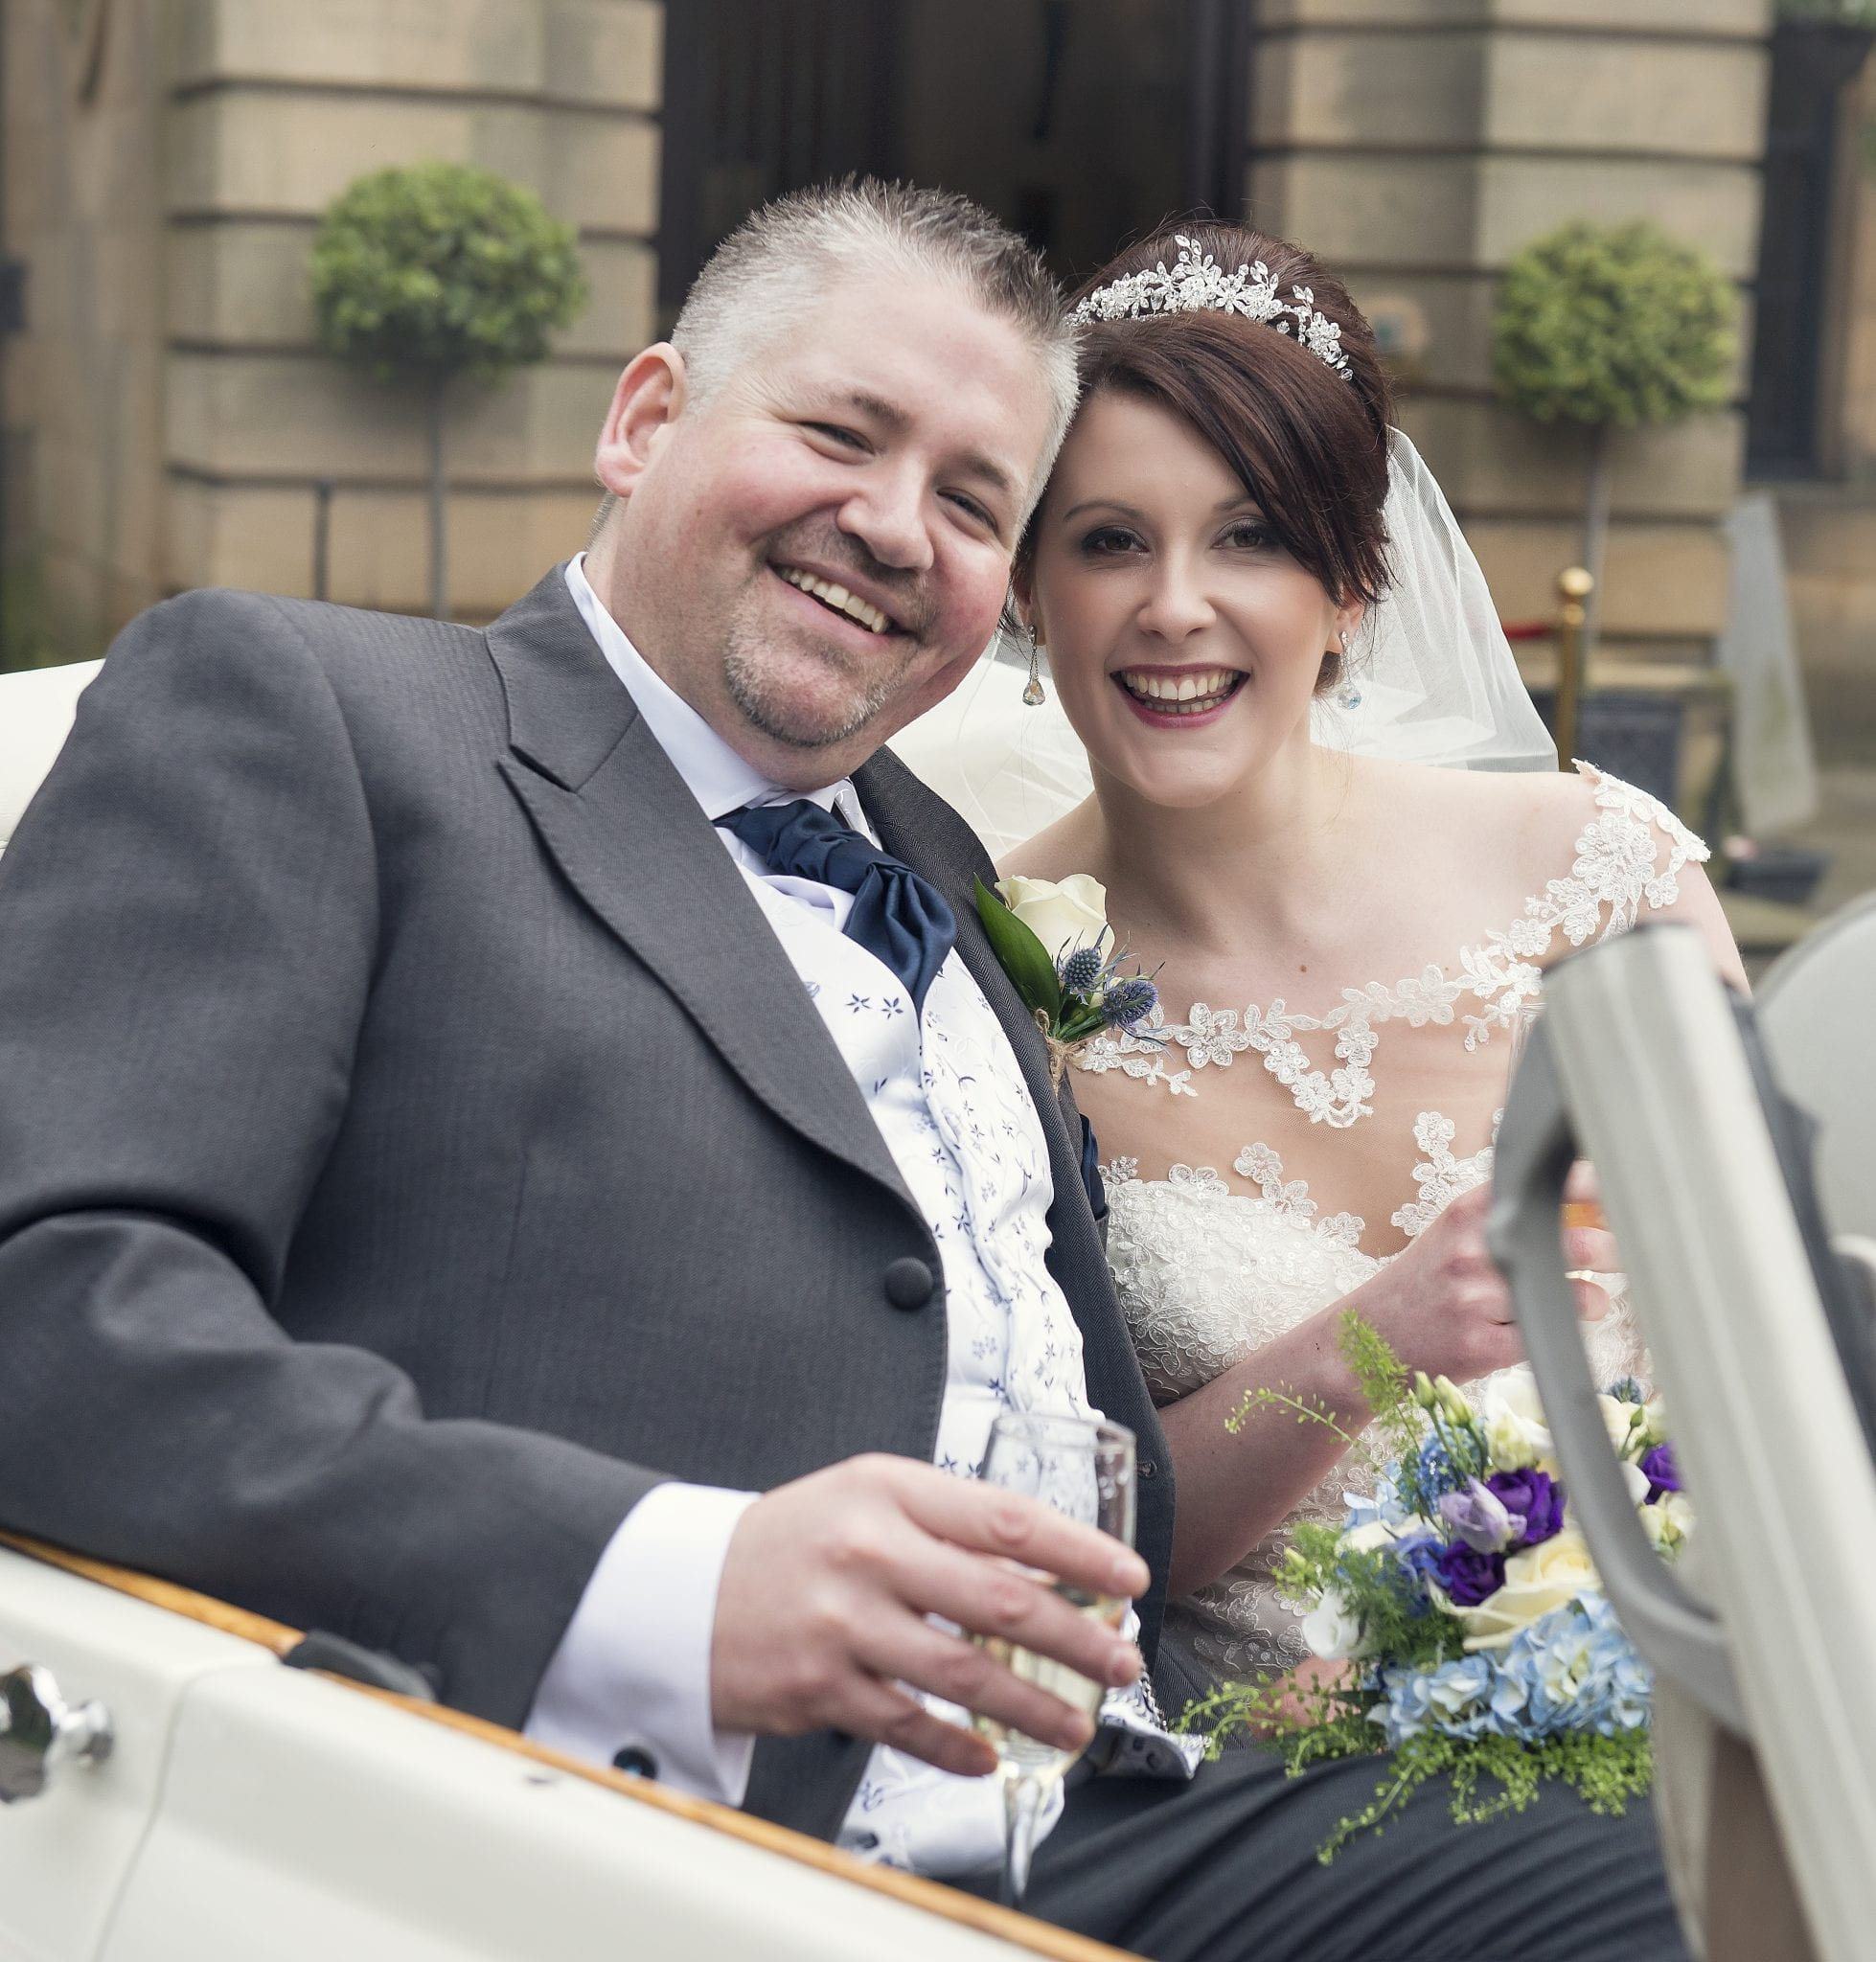 Real Wedding: Sarah and Damien's Crathorne Hall Wedding